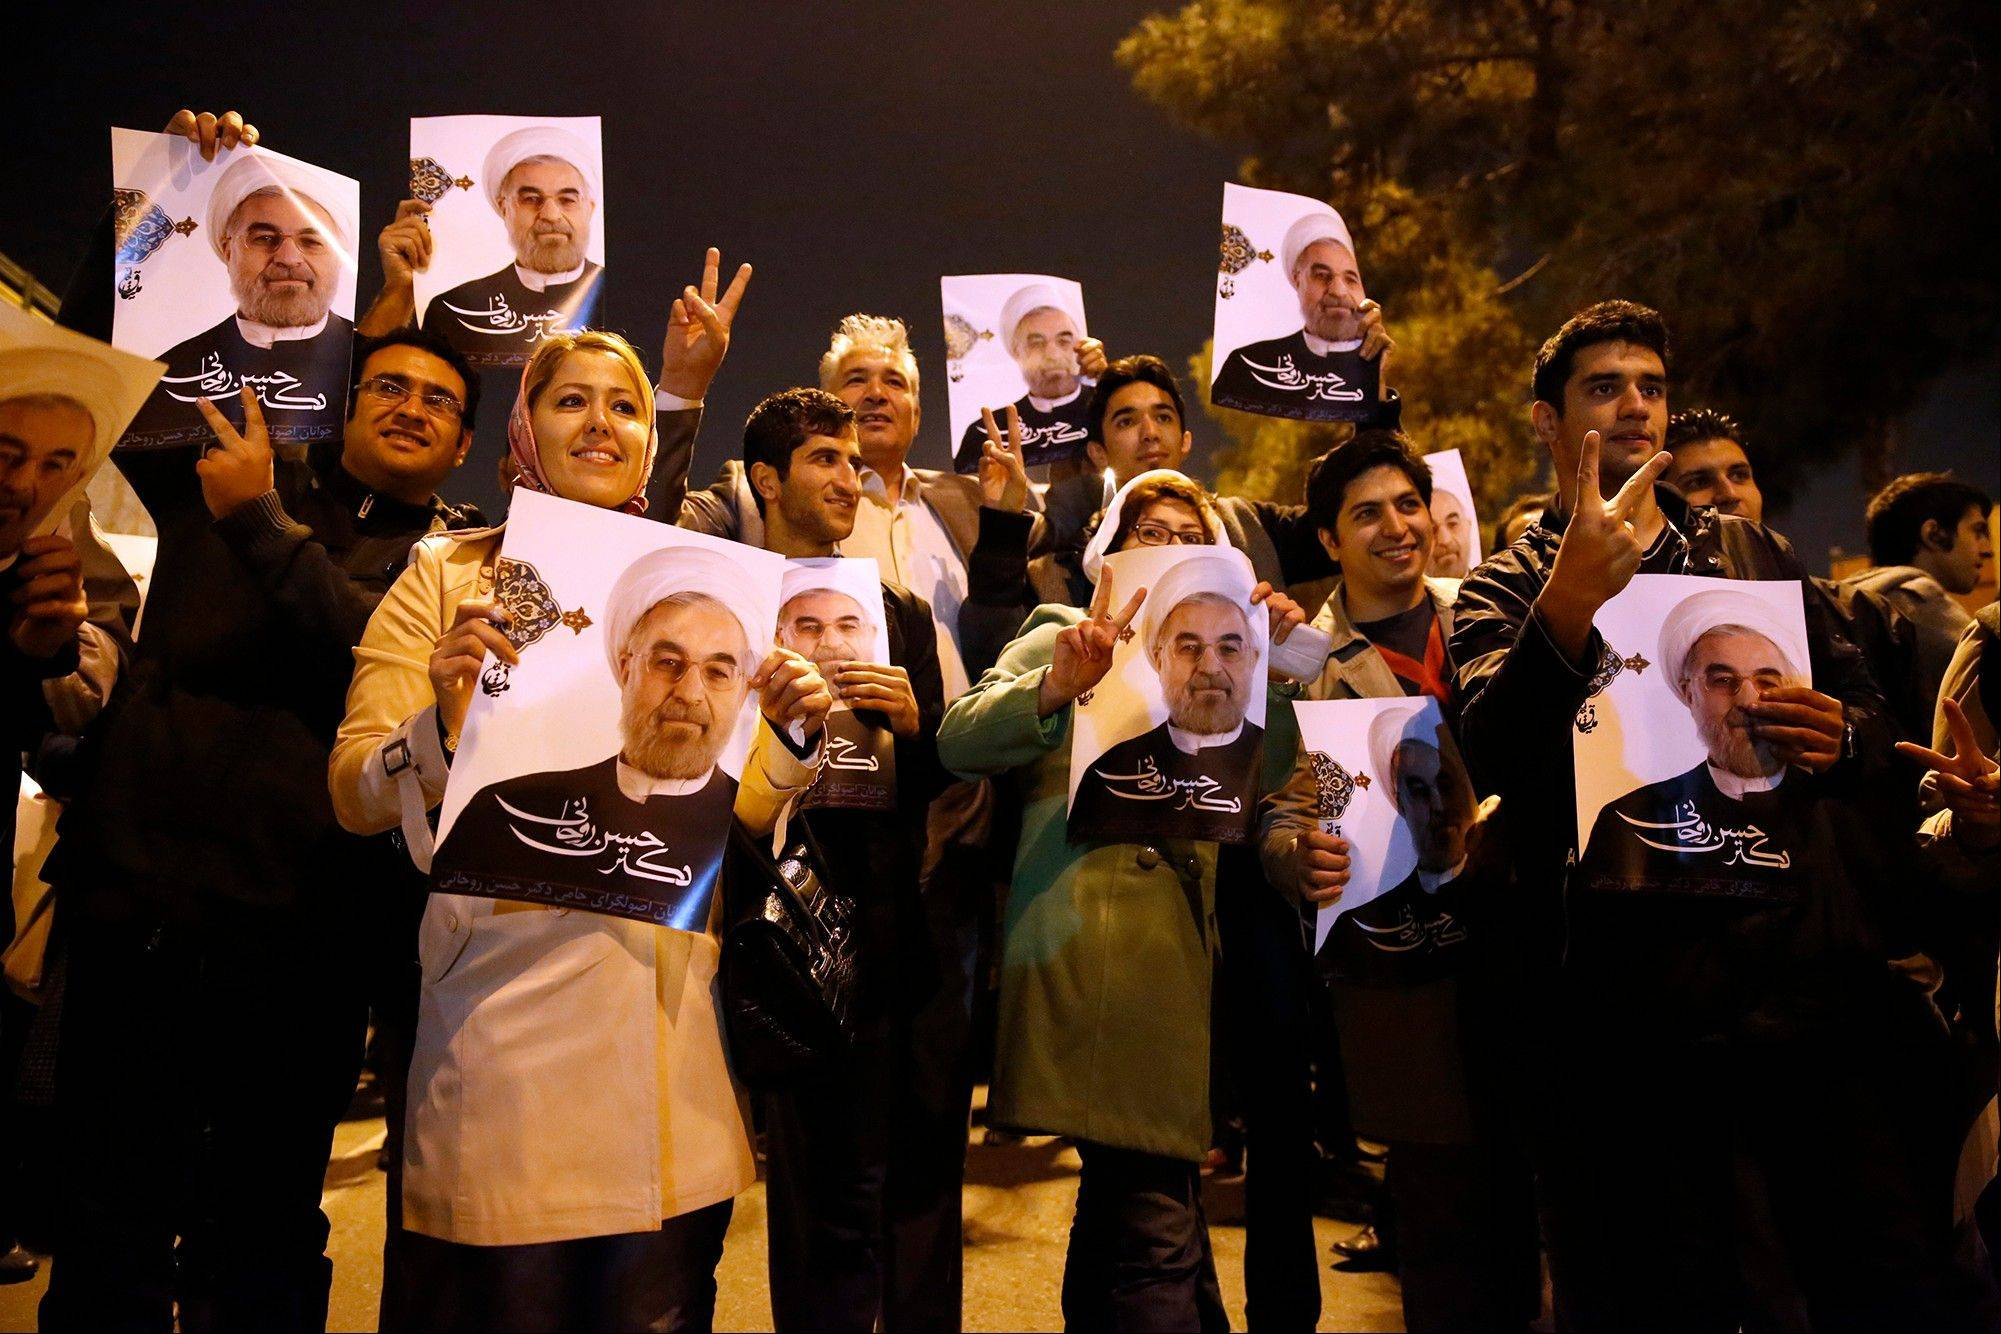 Iranians hold posters of President Hassan Rouhani as they welcome Iranian nuclear negotiators upon their arrival from Geneva at the Mehrabad airport in Tehran, Iran, Sunday.